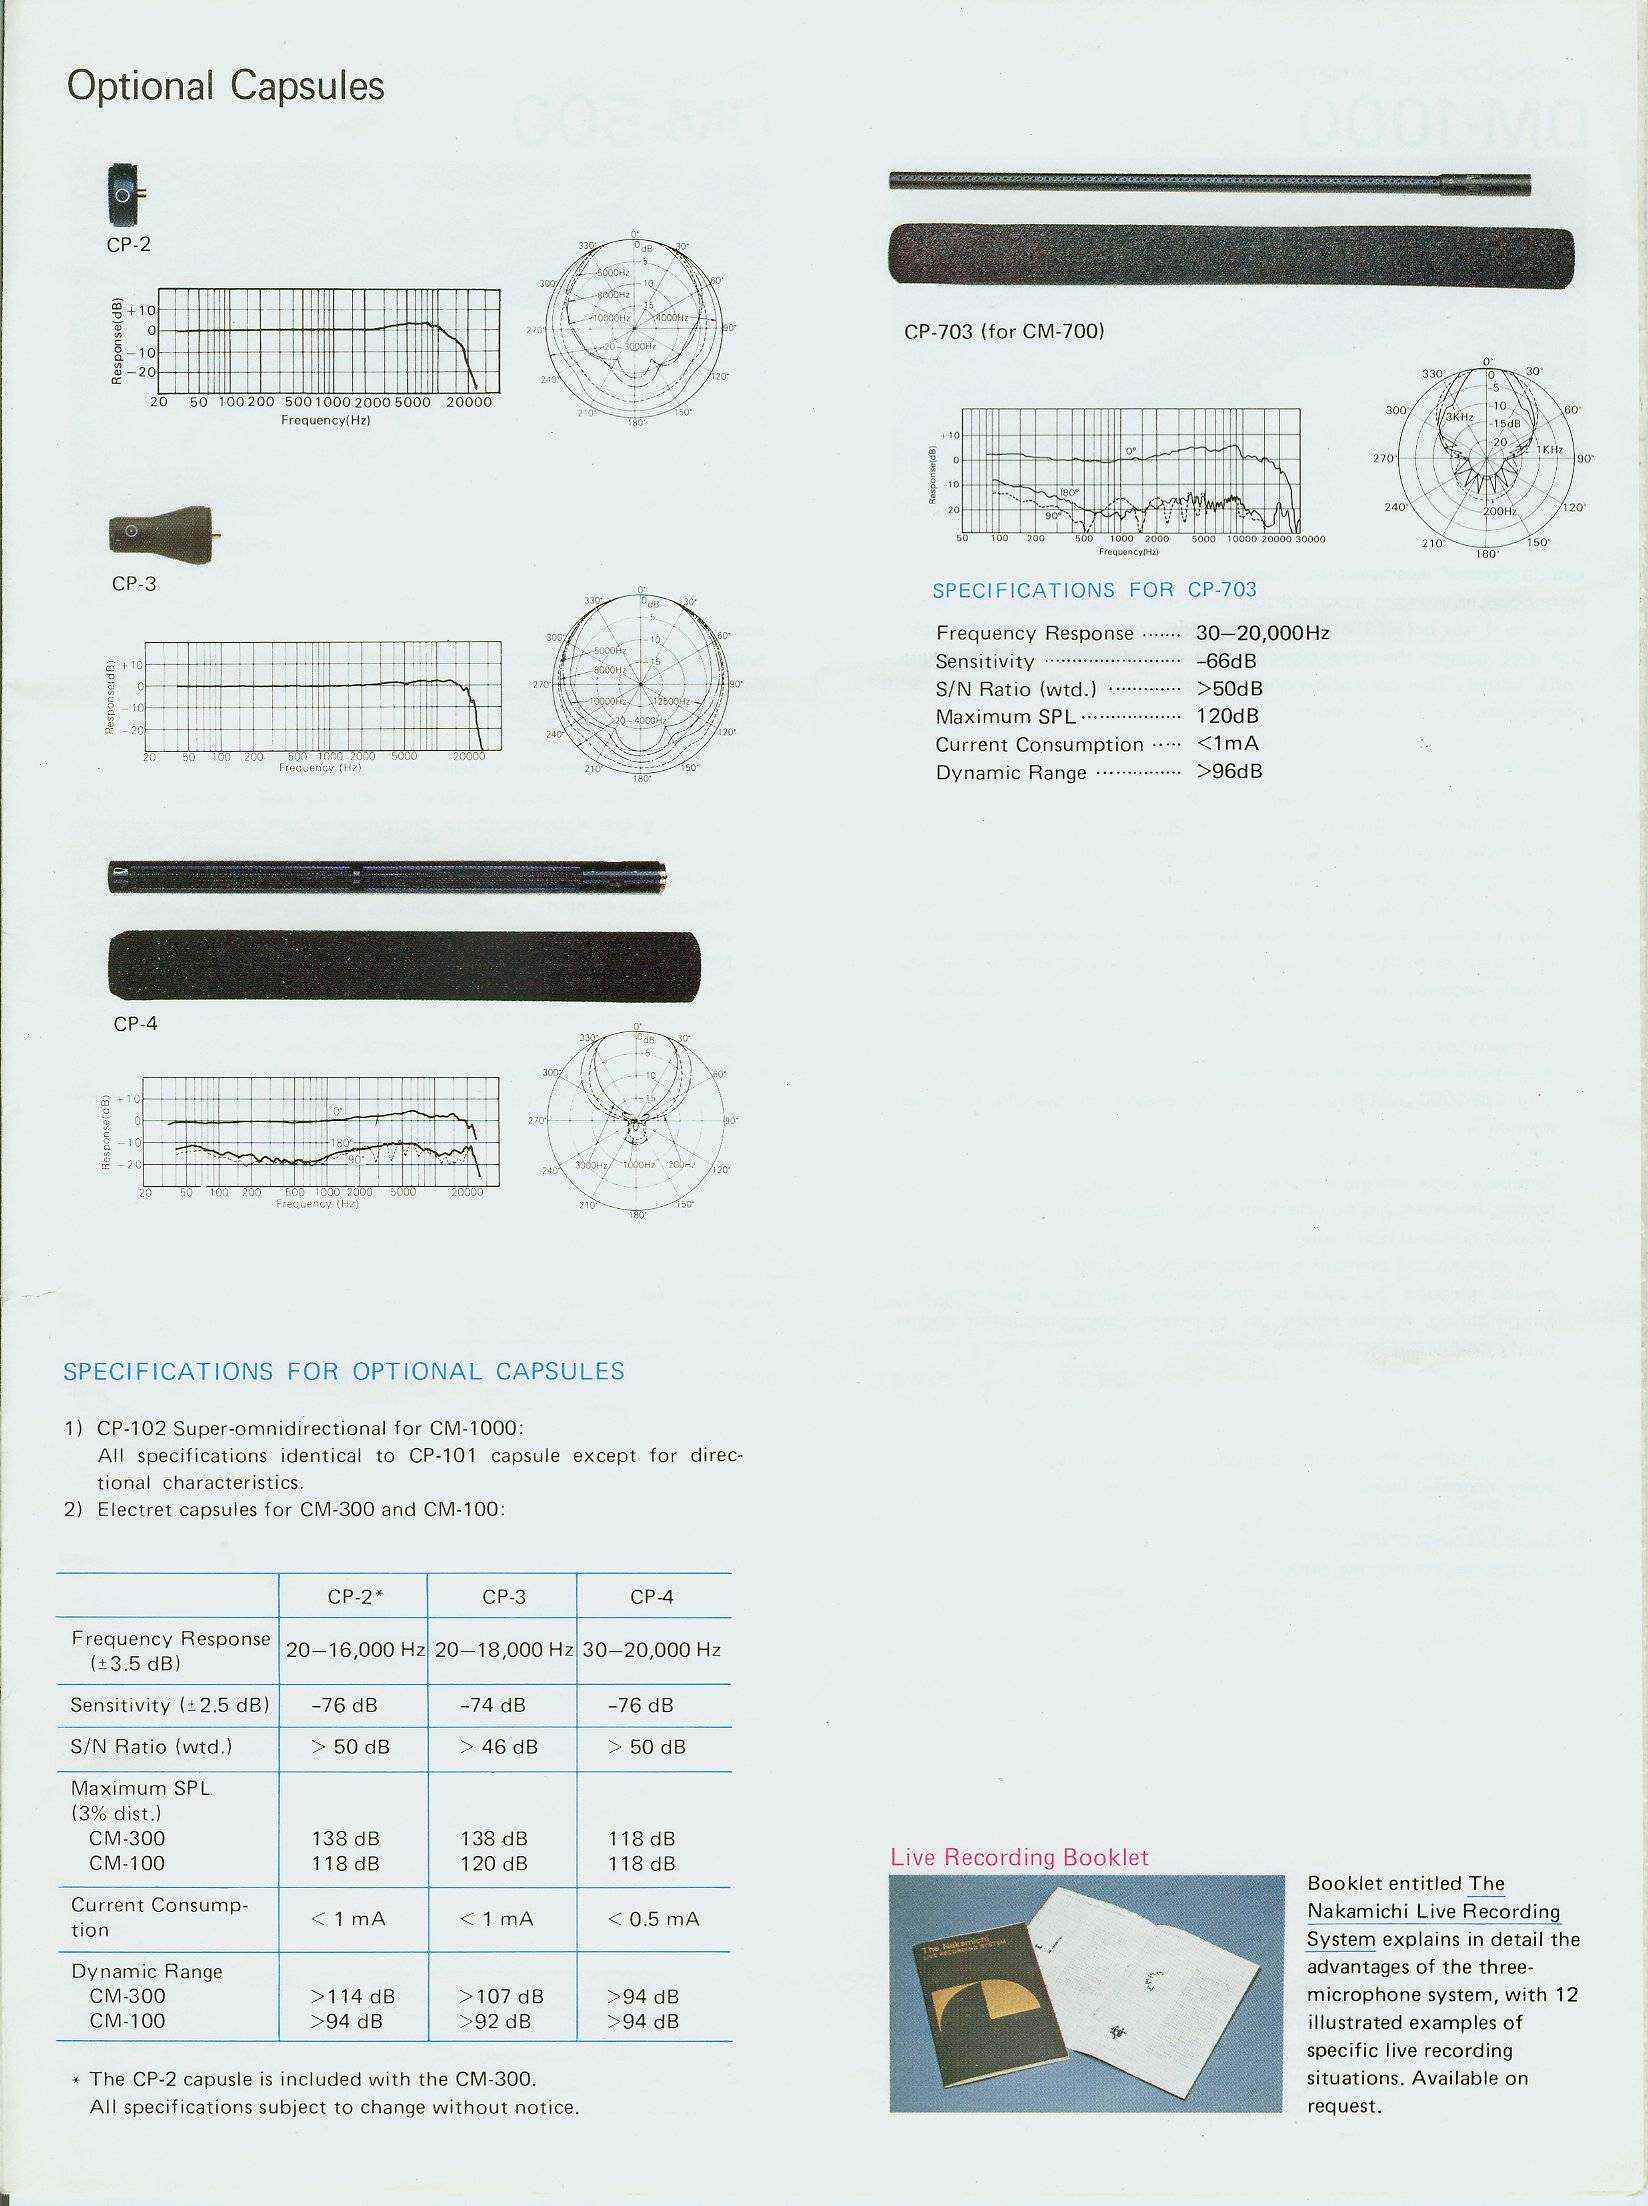 Nakamichi Model List Headset Nbe 250 Brochure Page